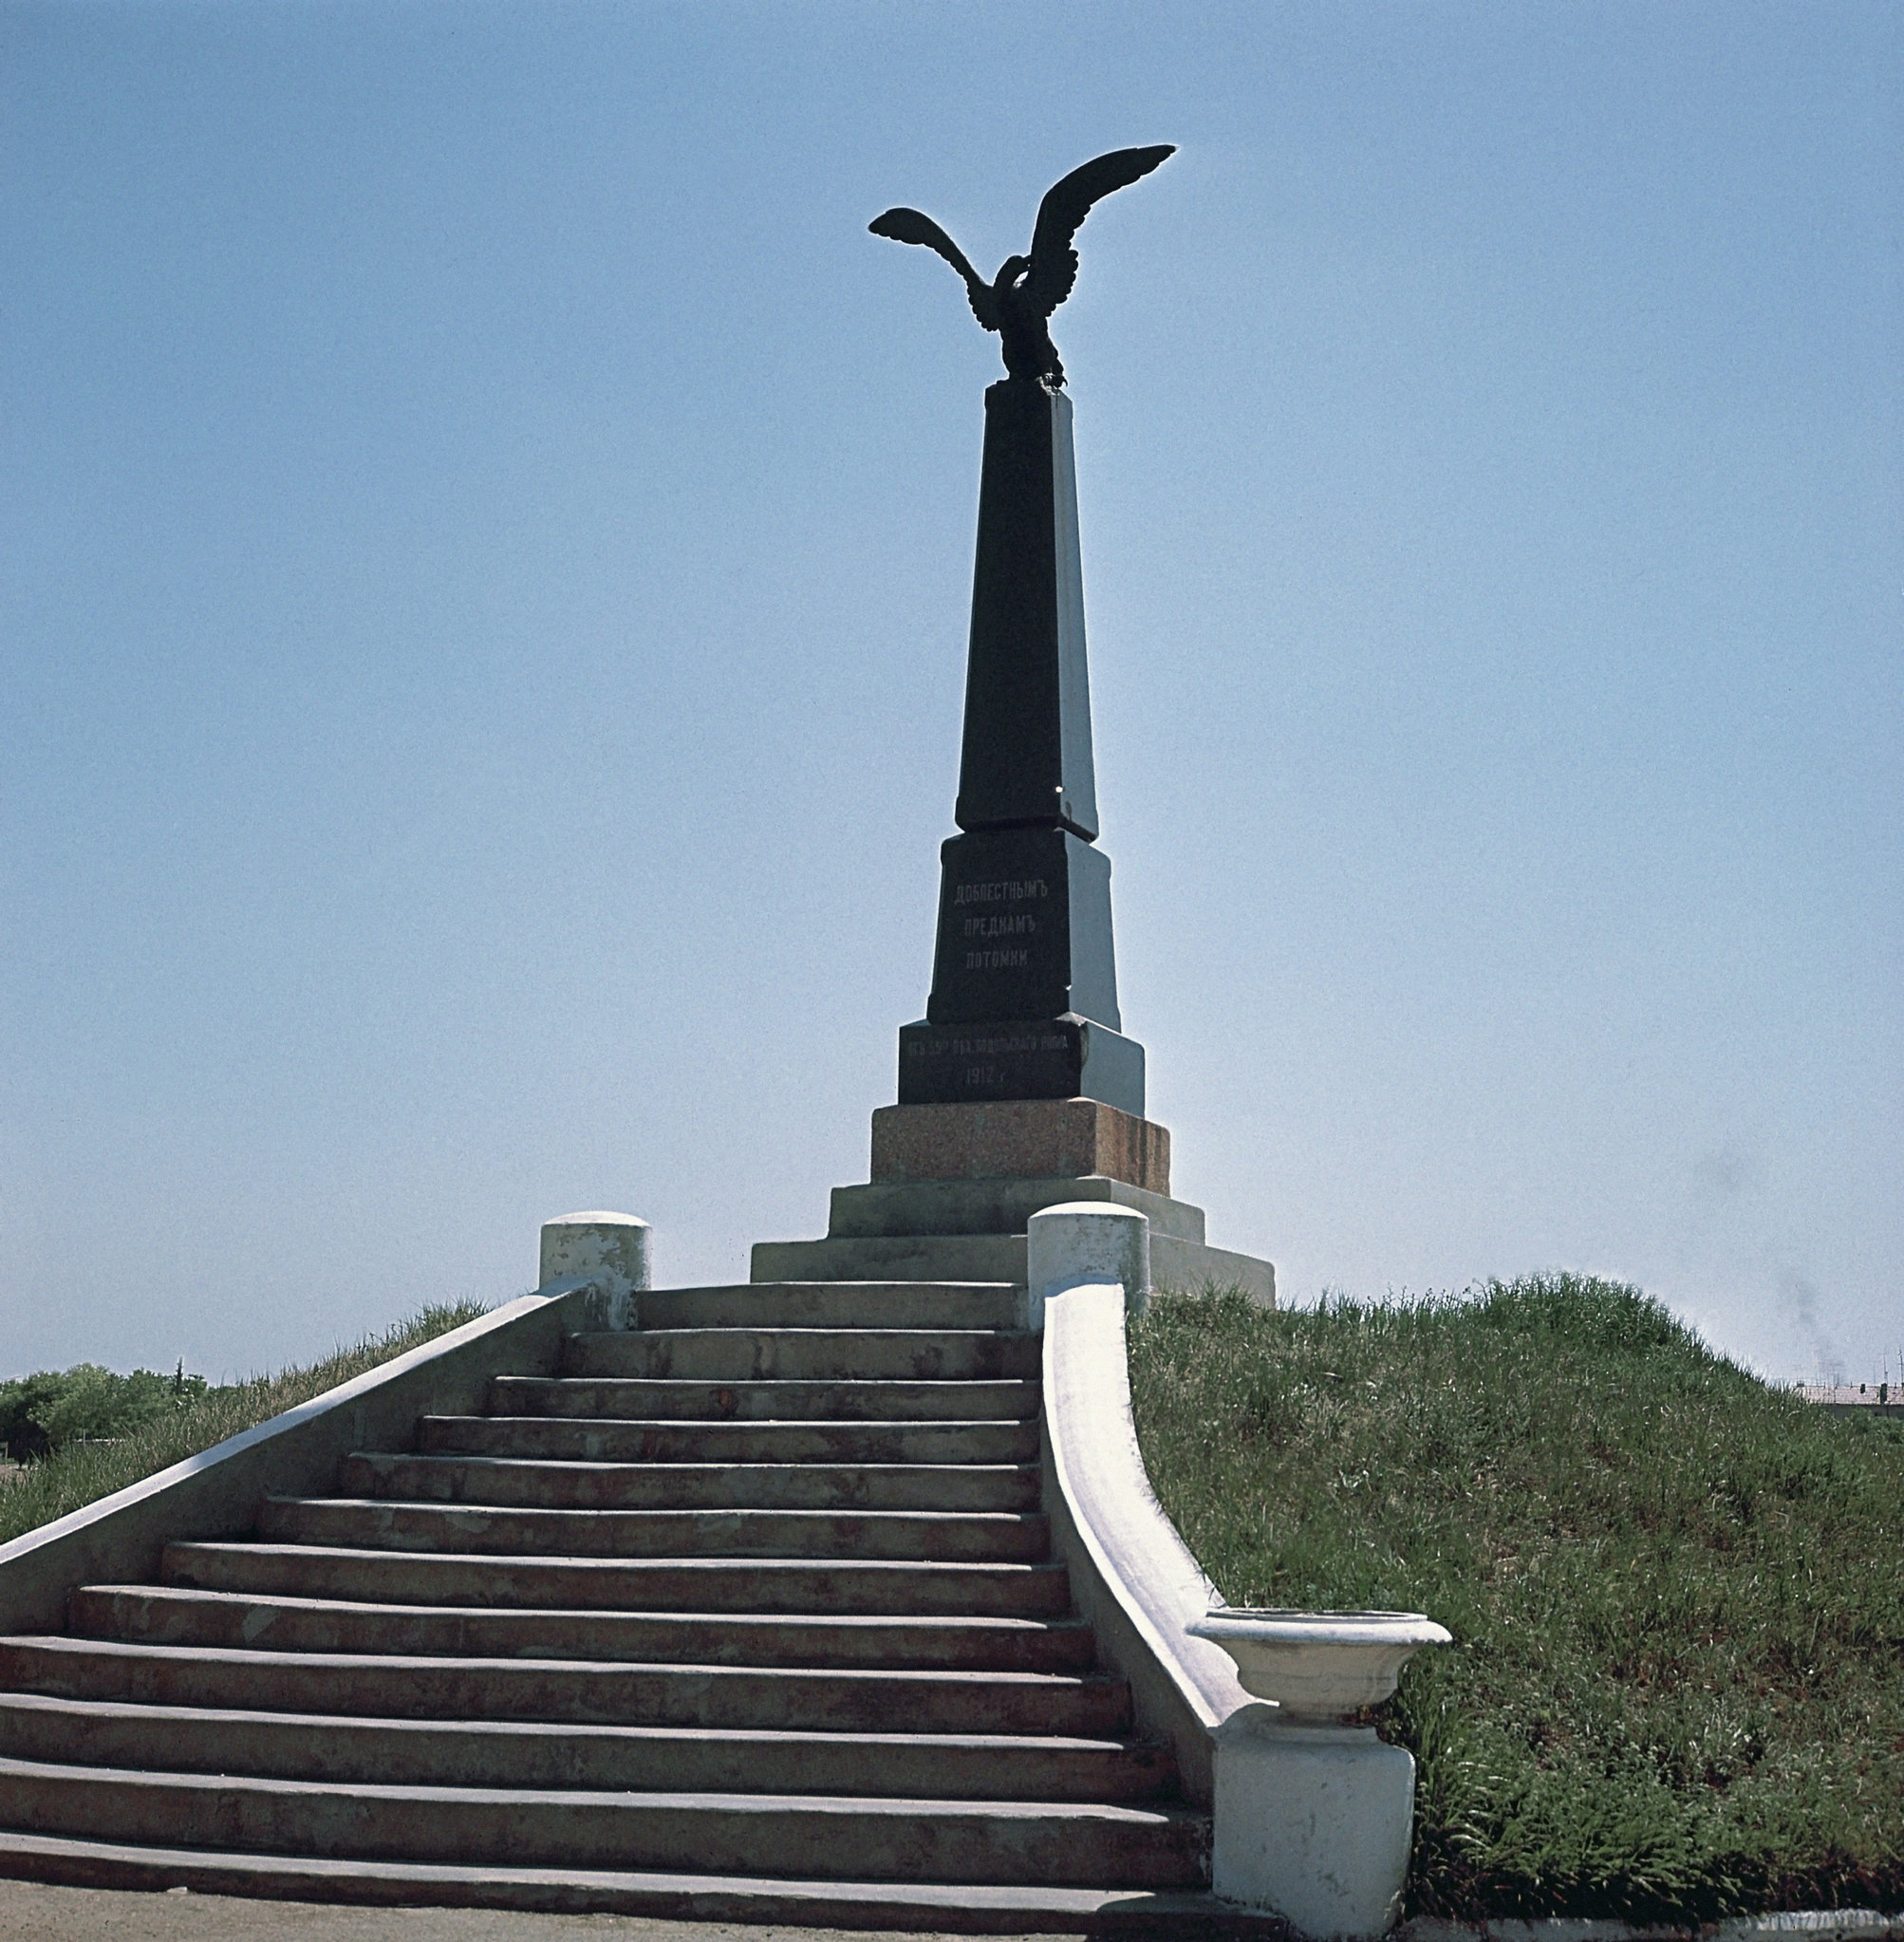 Monument Russian Glory in Bendery marking the 100th aniversary of Bessarabia becoming part of Russia